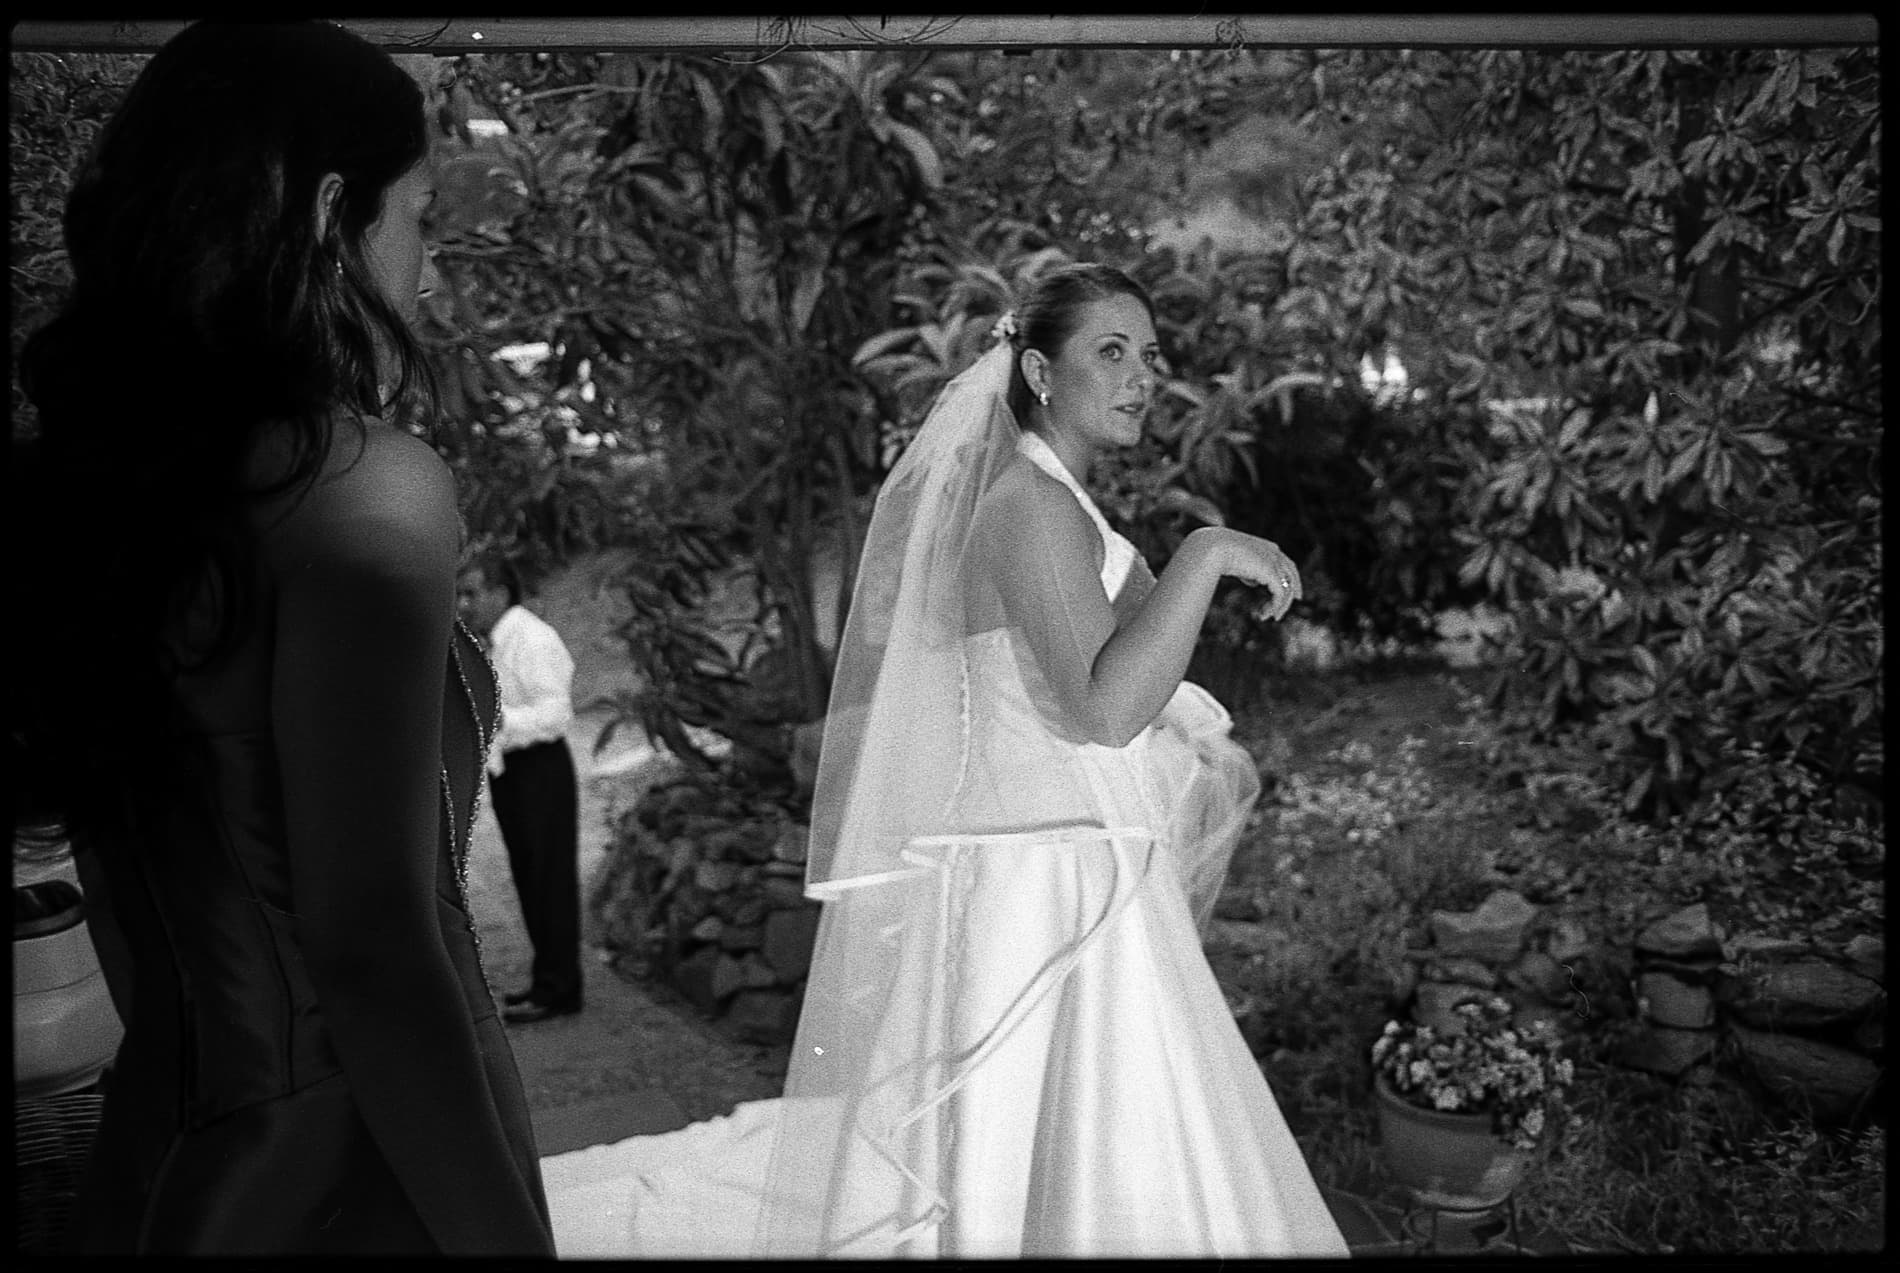 bride before the wedding ceremony in analogue